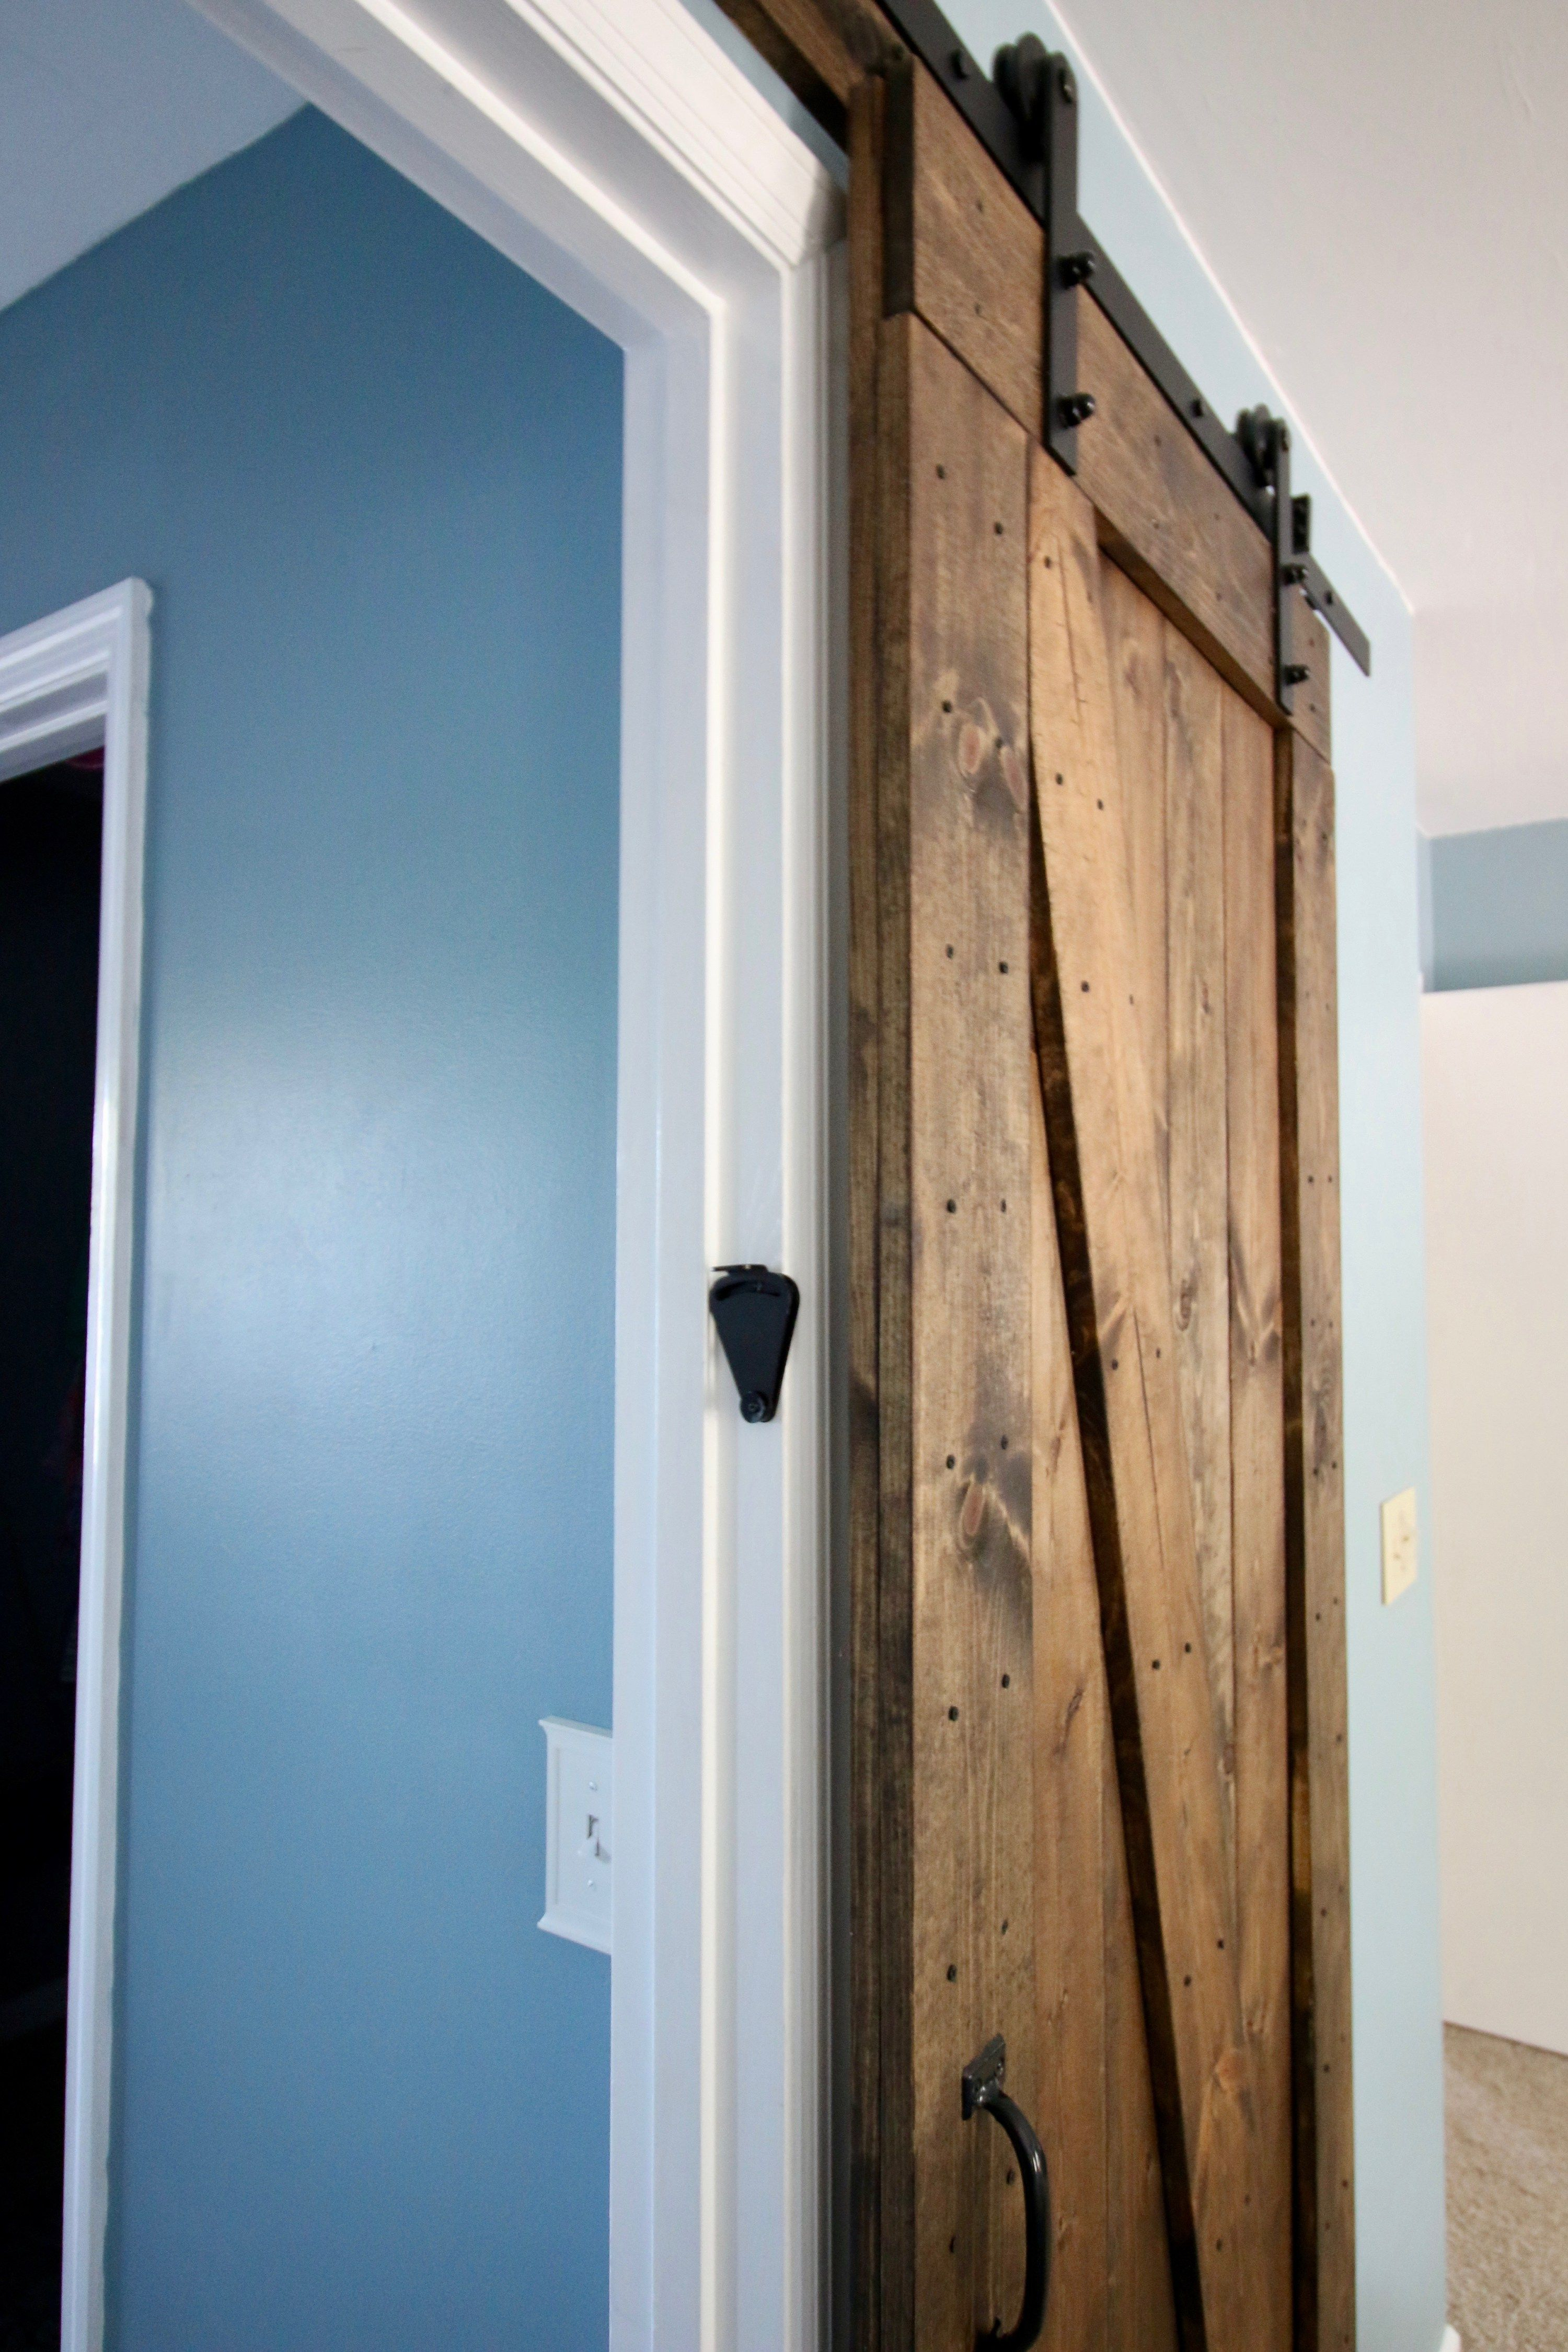 How To Add A Barn Door Lock Barn Door Locks Bathroom Barn Door Bathroom Door Locks